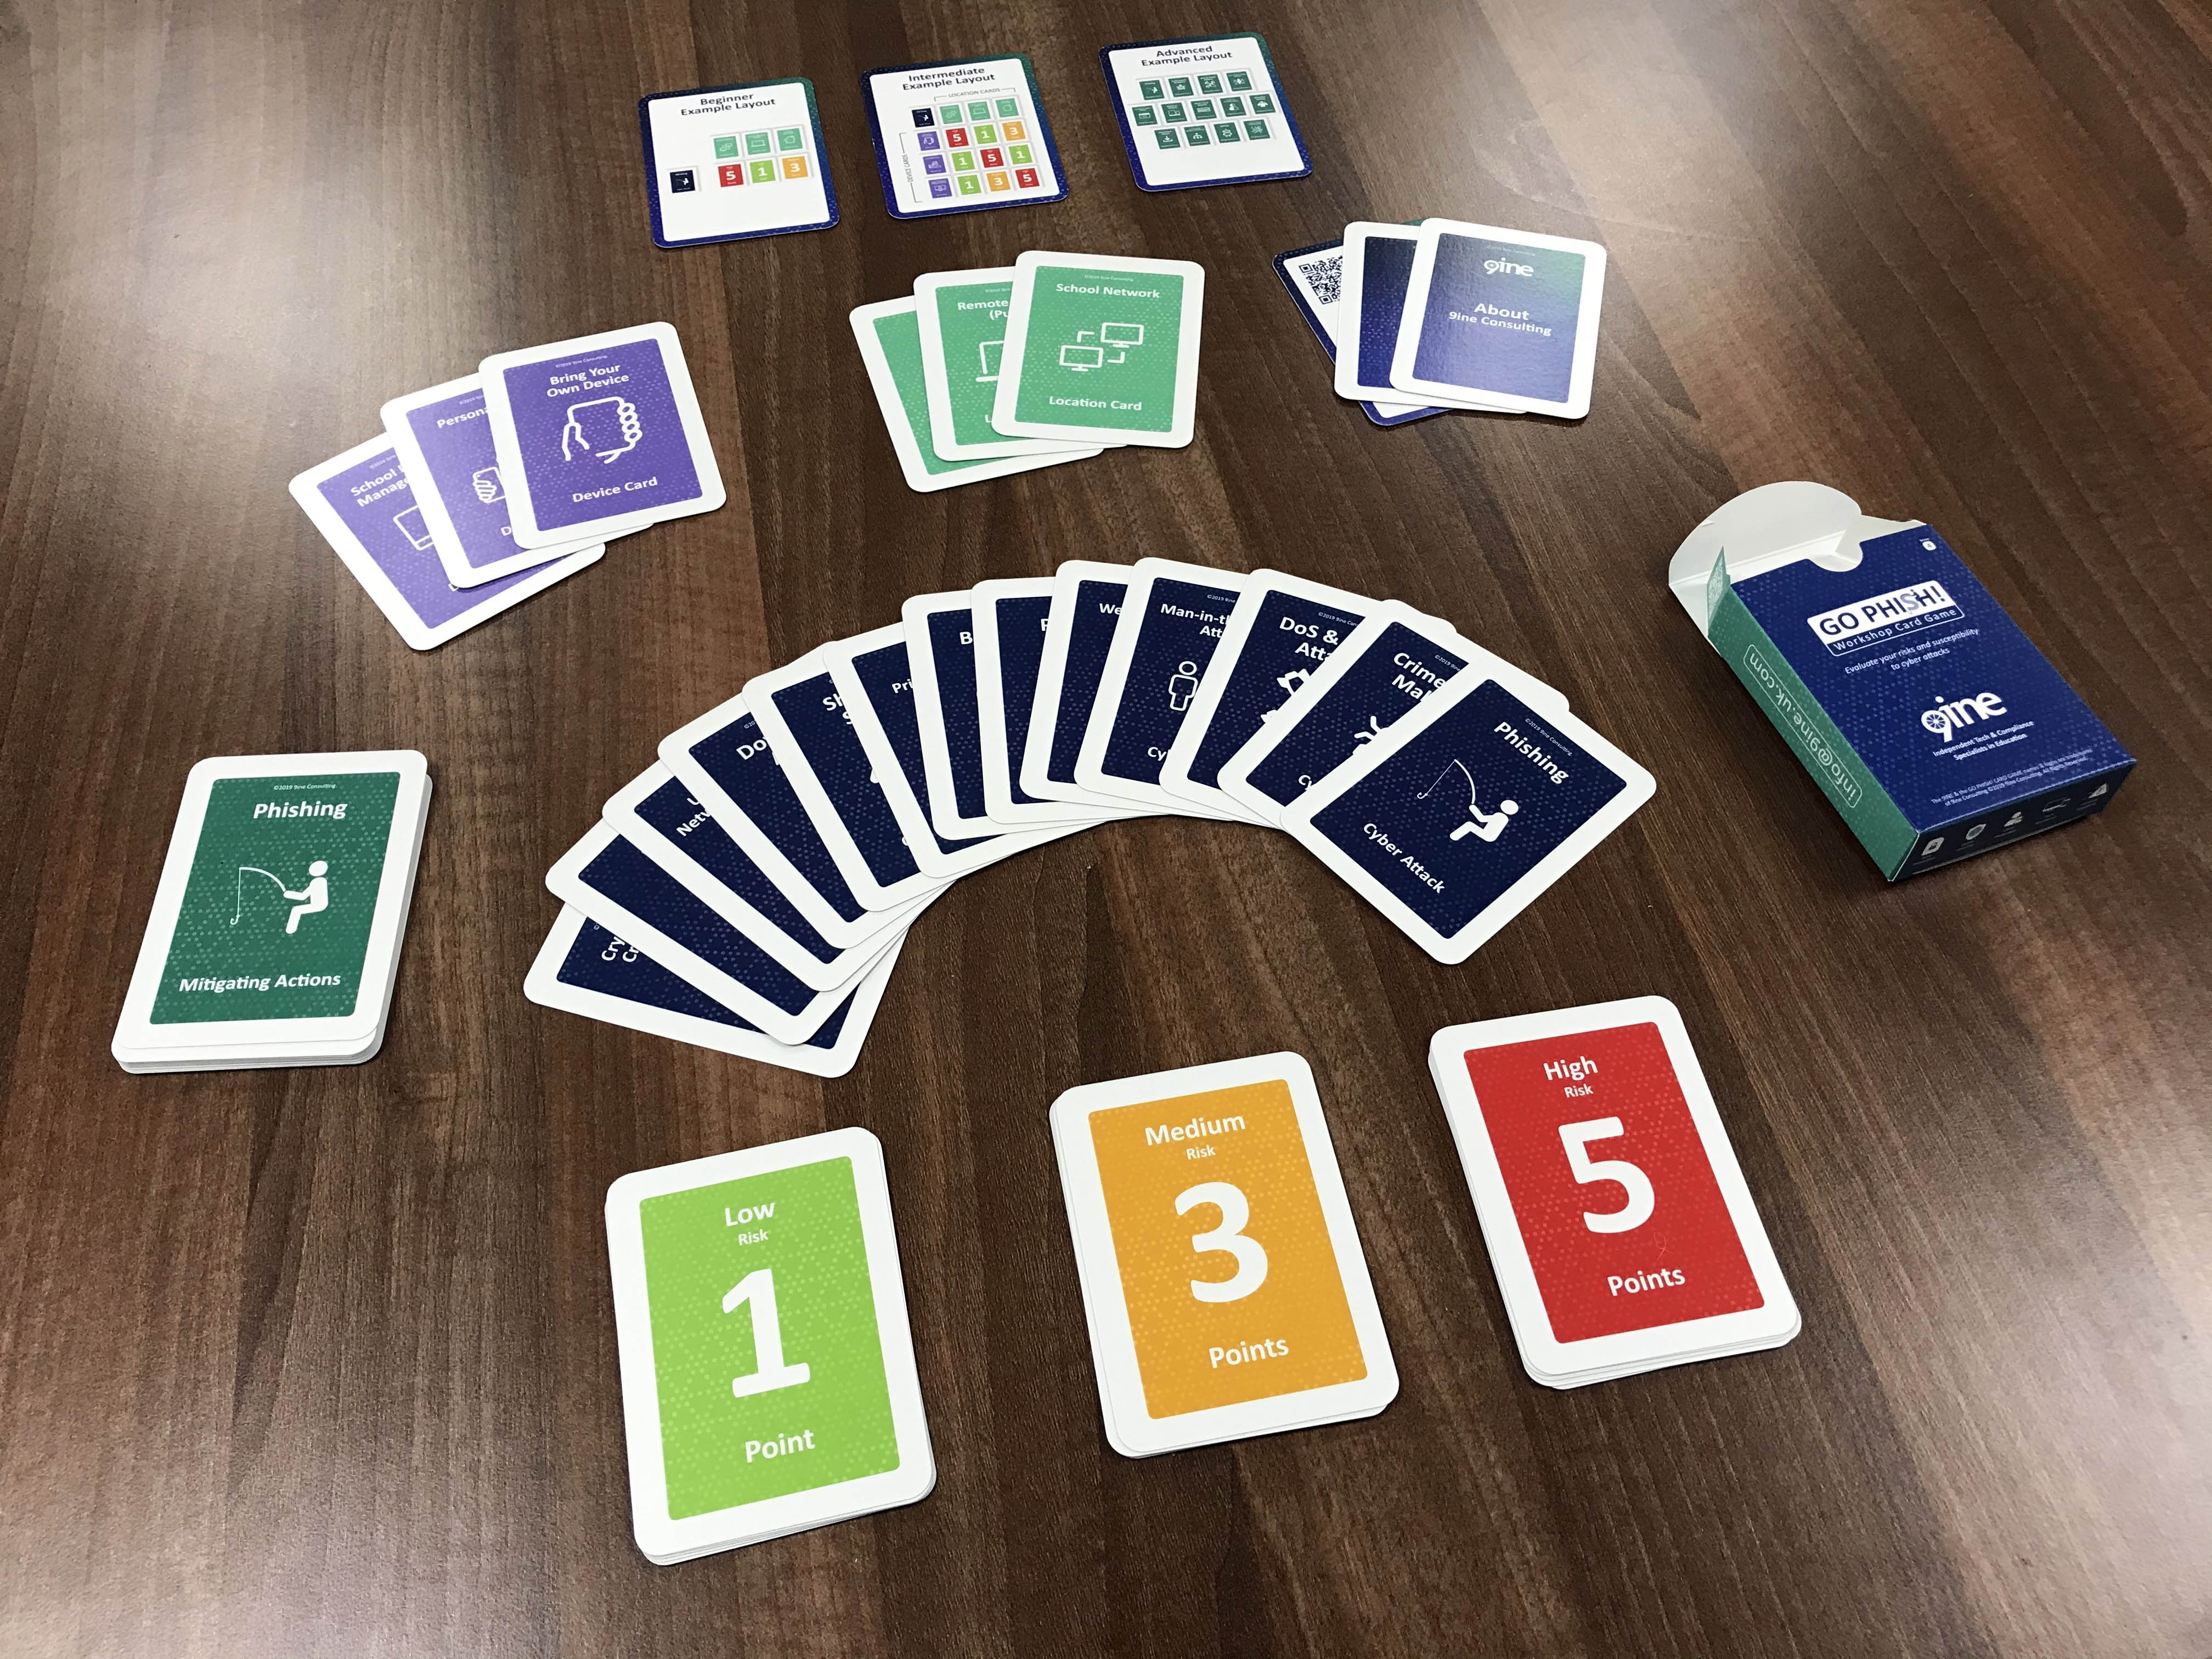 9ine Consulting Go Phish Game with cards spread out